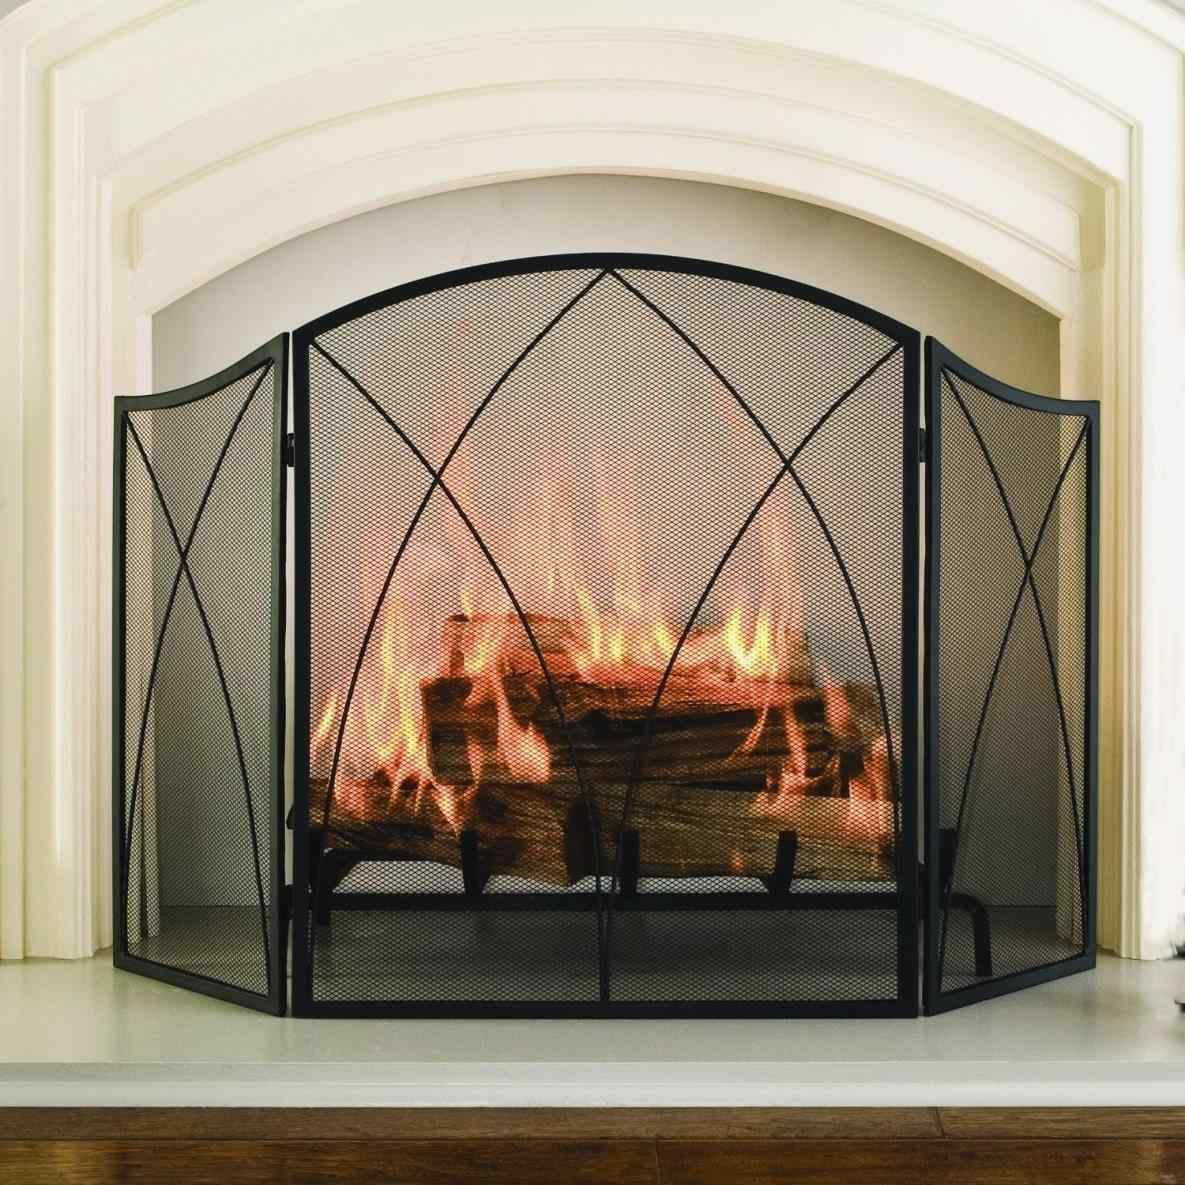 Heavy Duty Fireplace tools Beautiful 11 Best Fancy Fireplace Screens Design and Decor Ideas